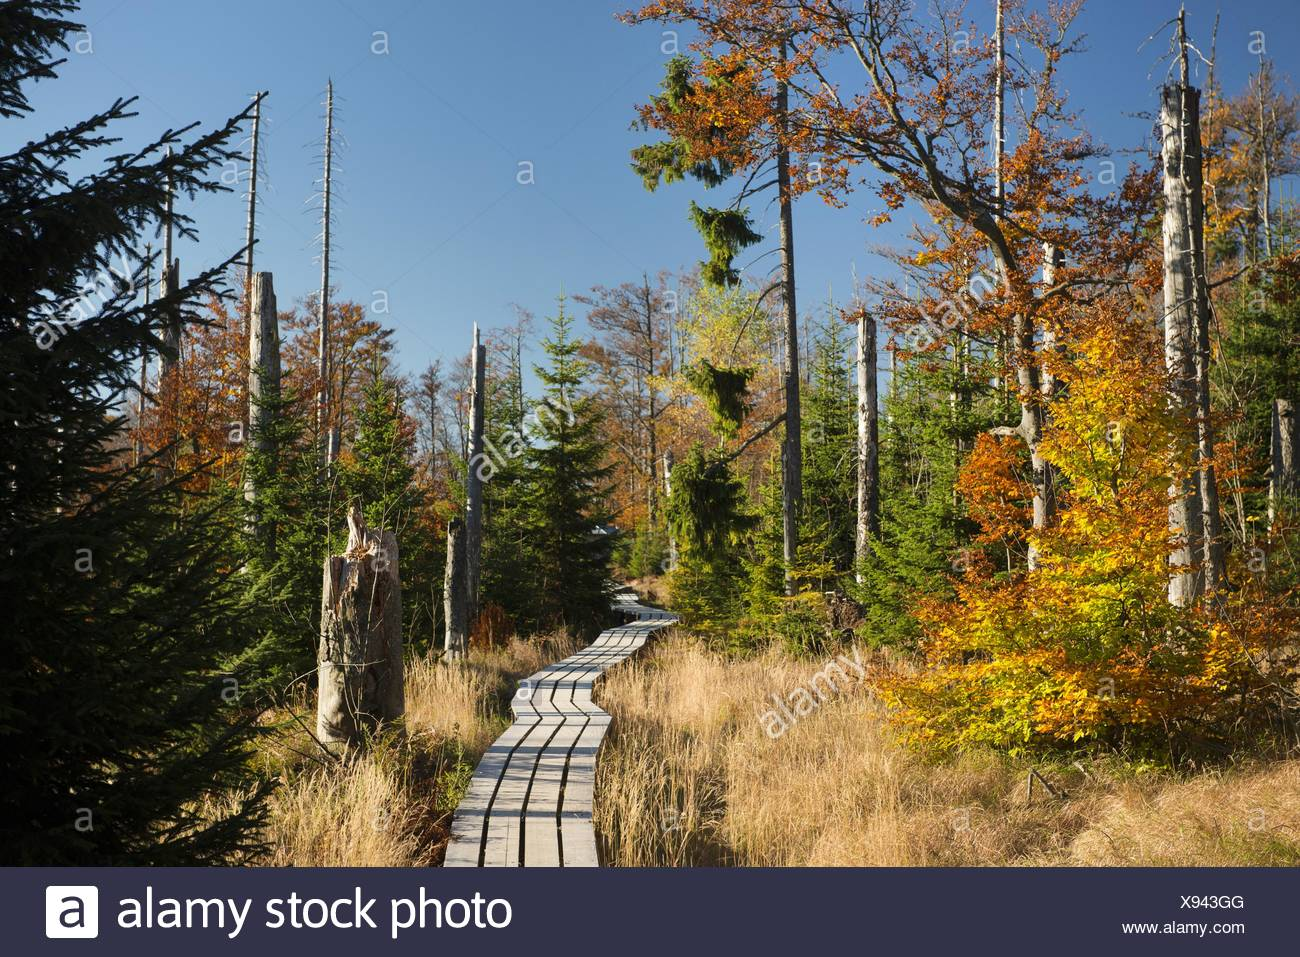 37765225a2a path through autumnal forest with wind throw of trees after stormy weather